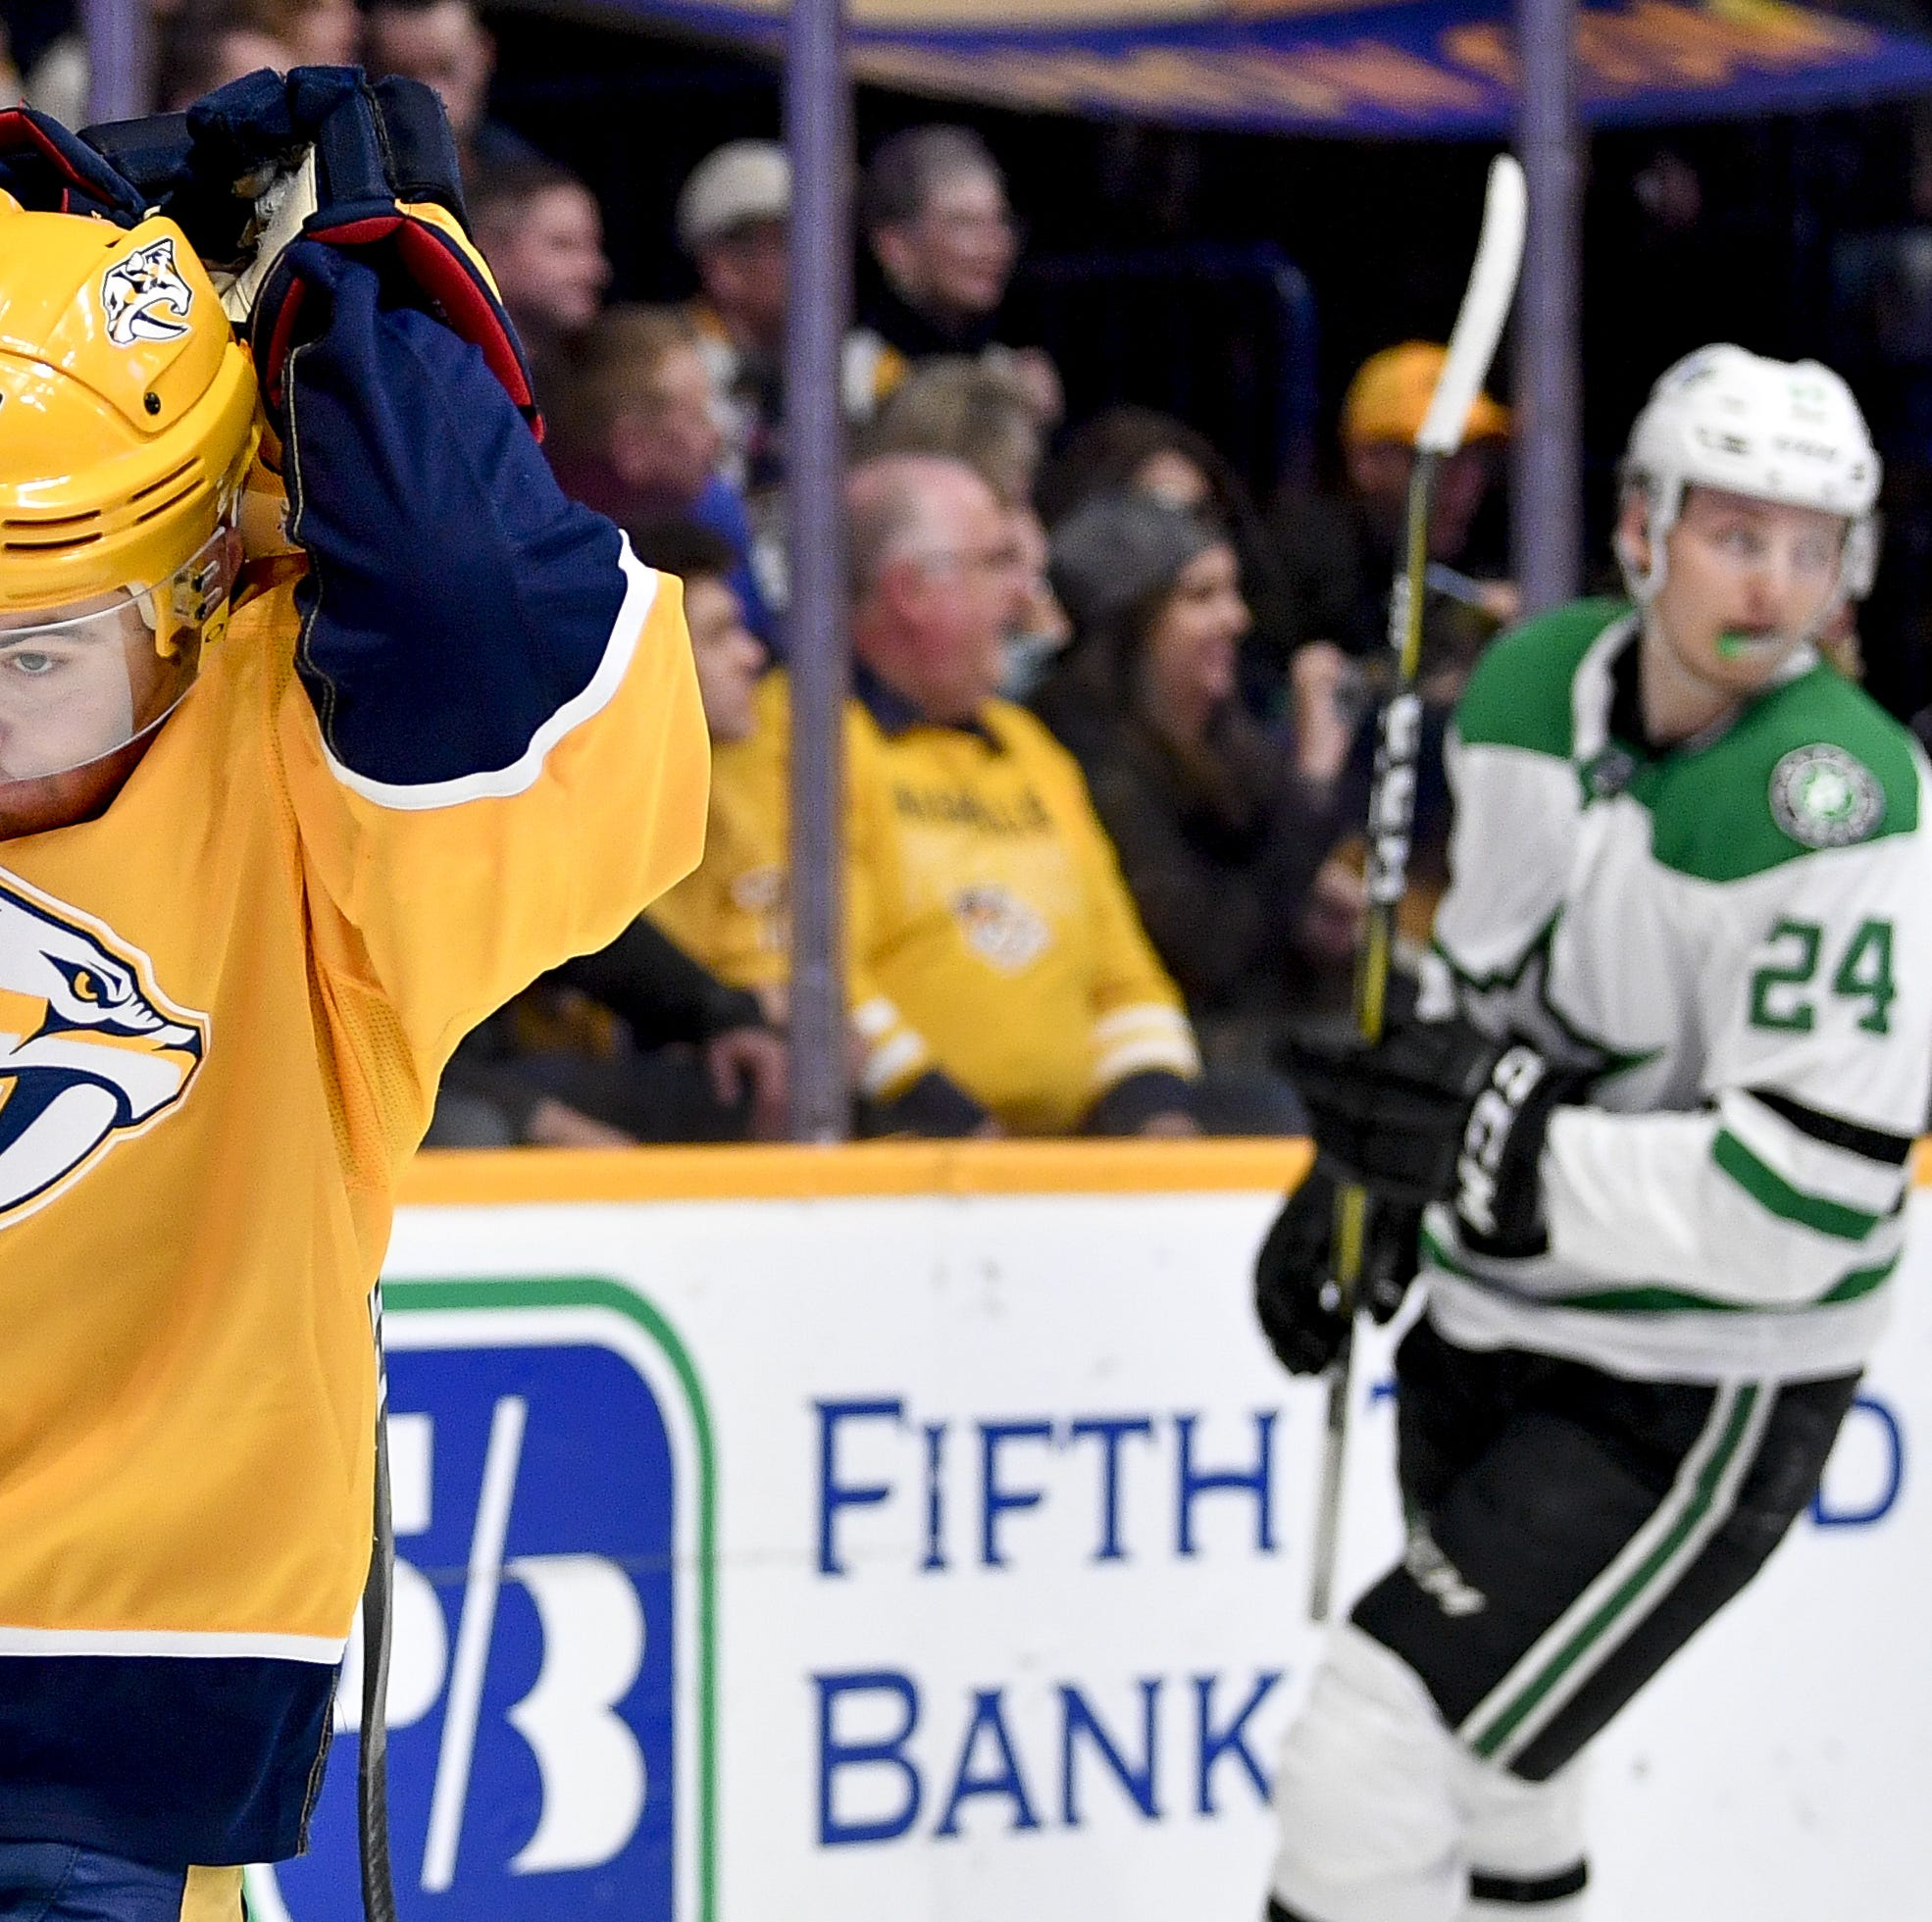 NHL playoffs: Nashville Predators vs Dallas Stars predictions